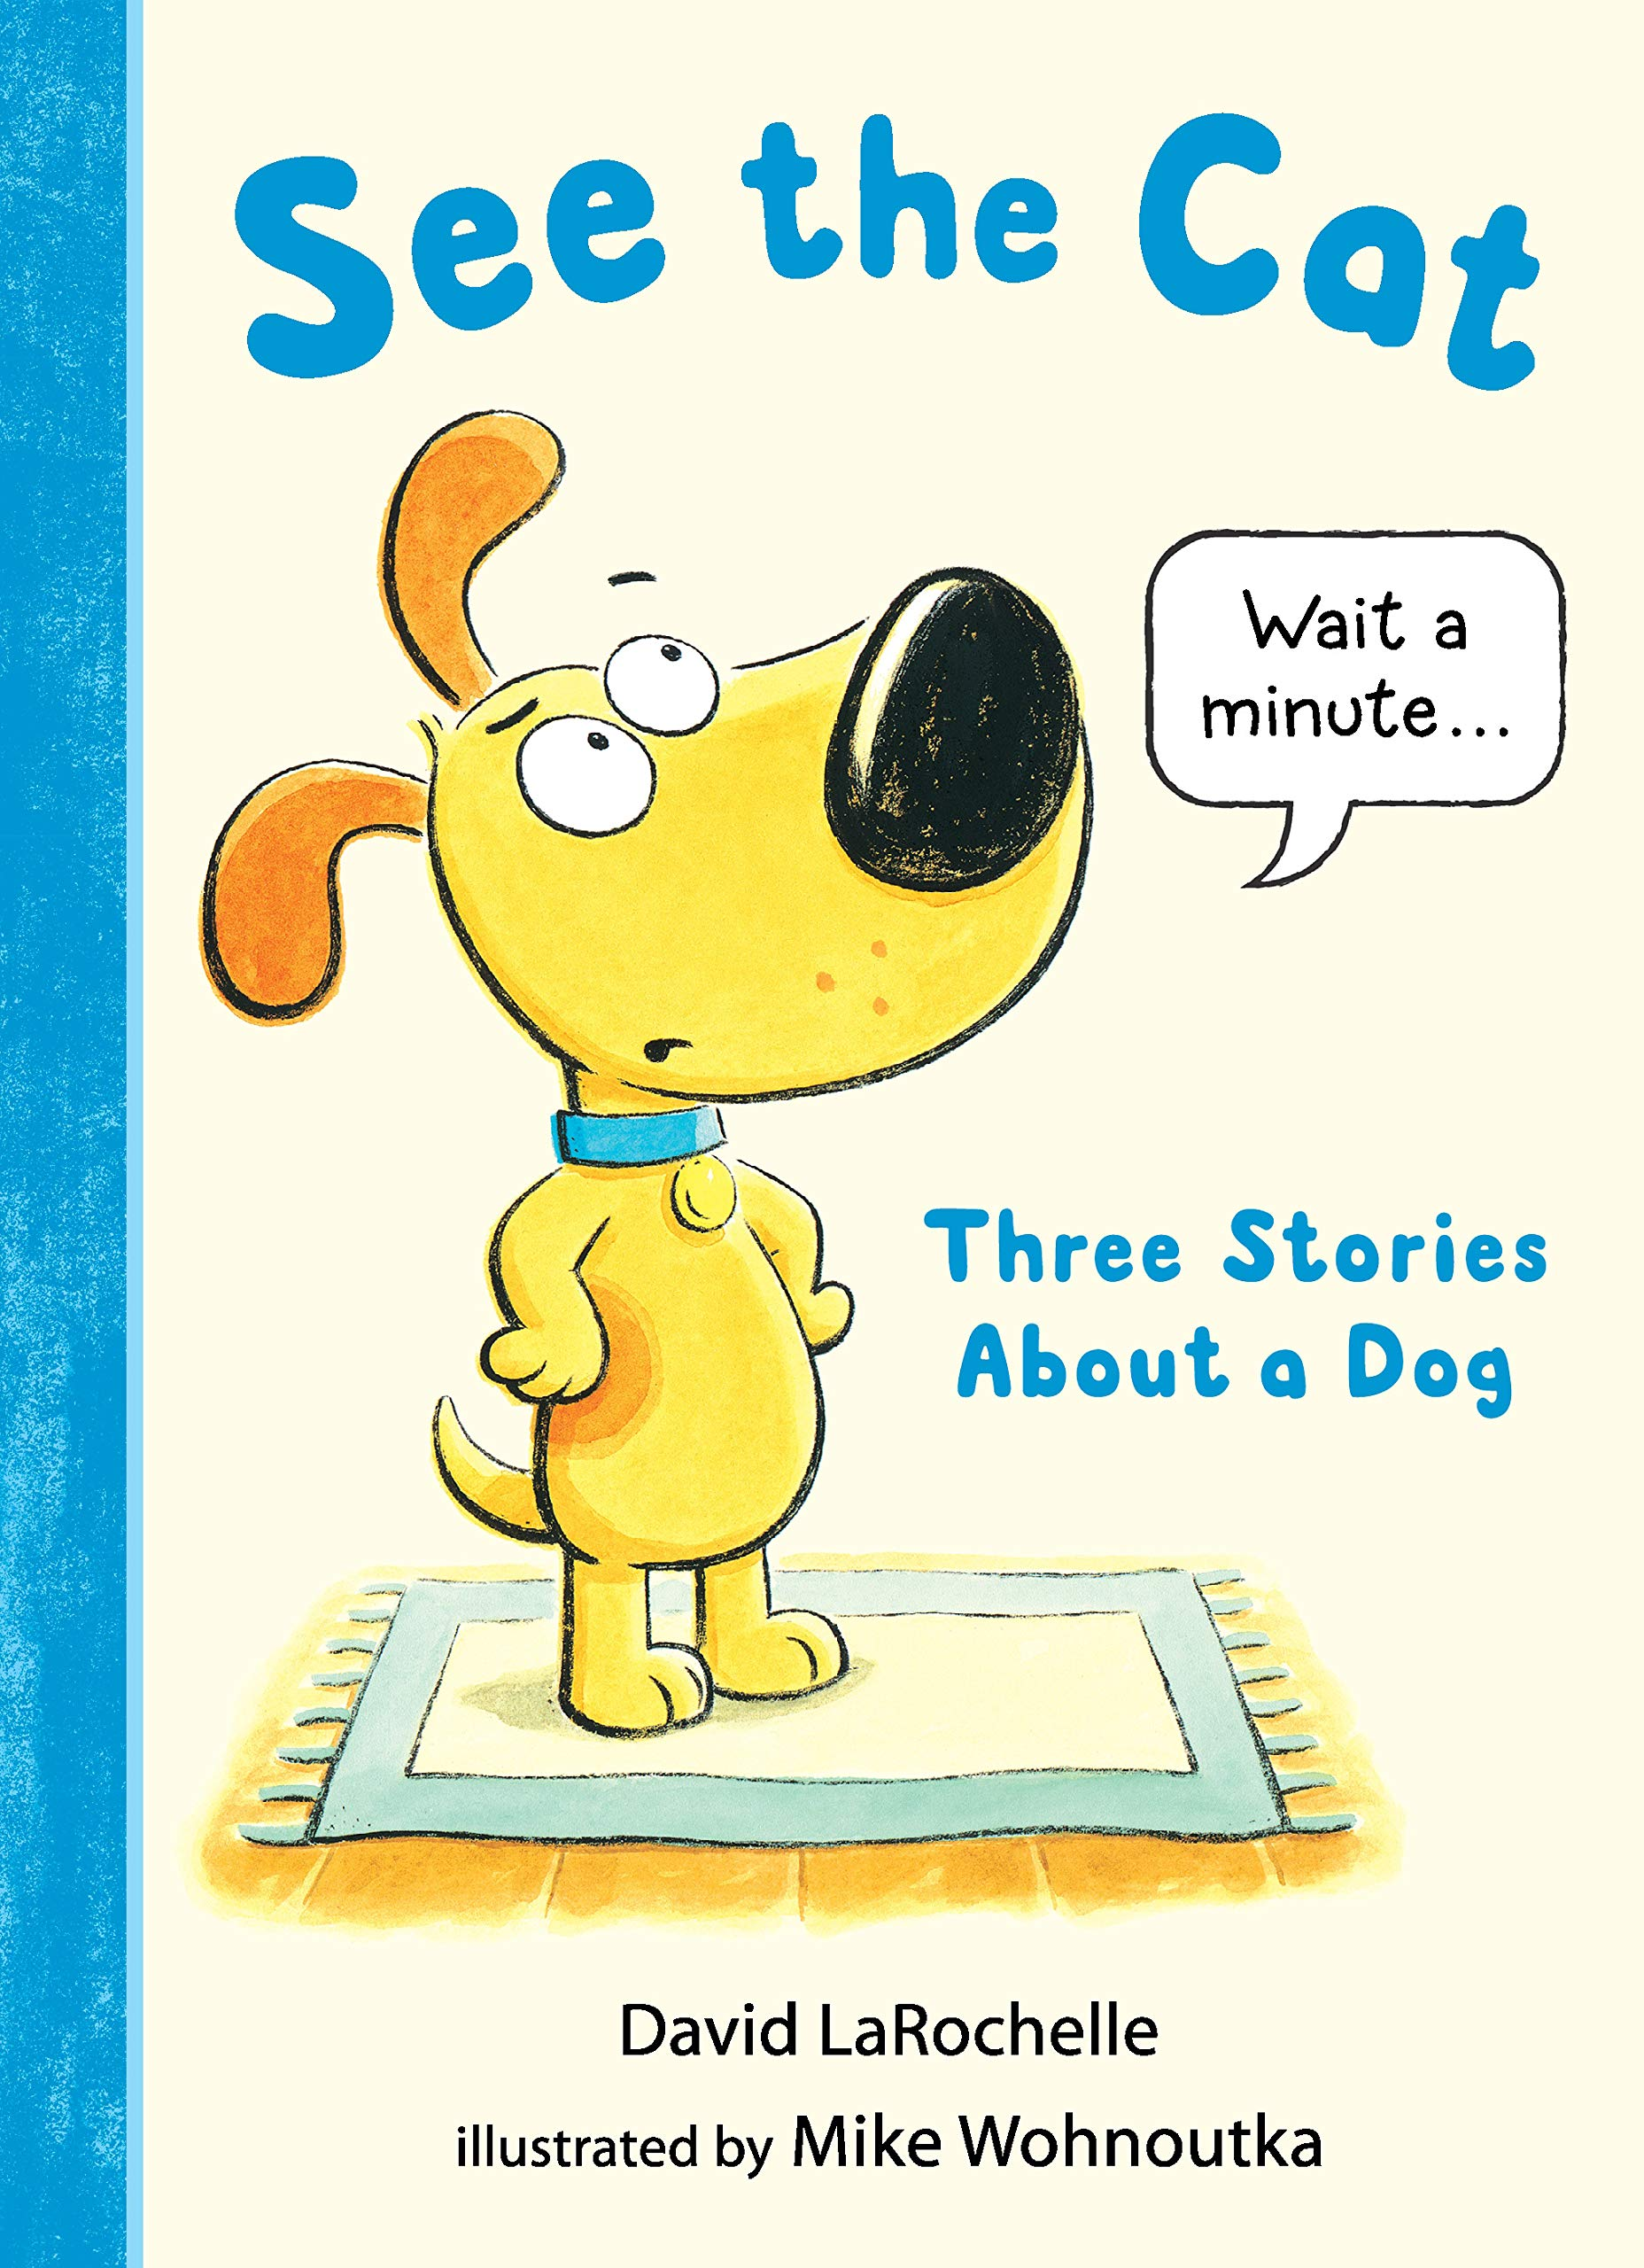 Amazon.com: See the Cat: Three Stories About a Dog (9781536204278 ...